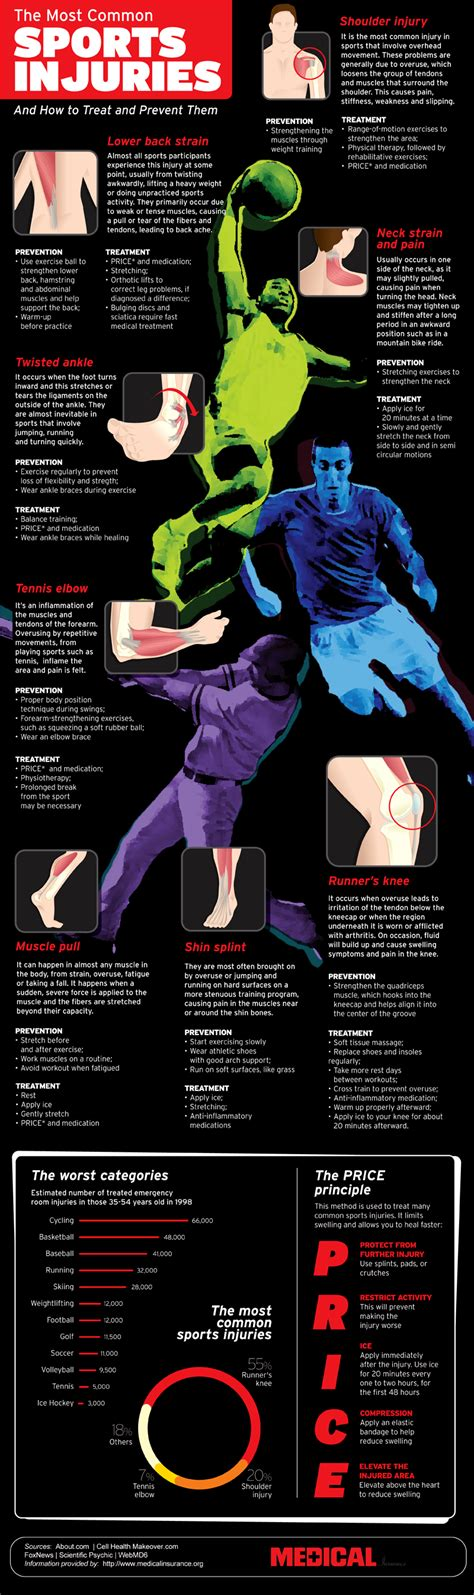 8 Most Common Killers And How To Stop Them by 8 Most Common Sports Injuries And Their Treatments